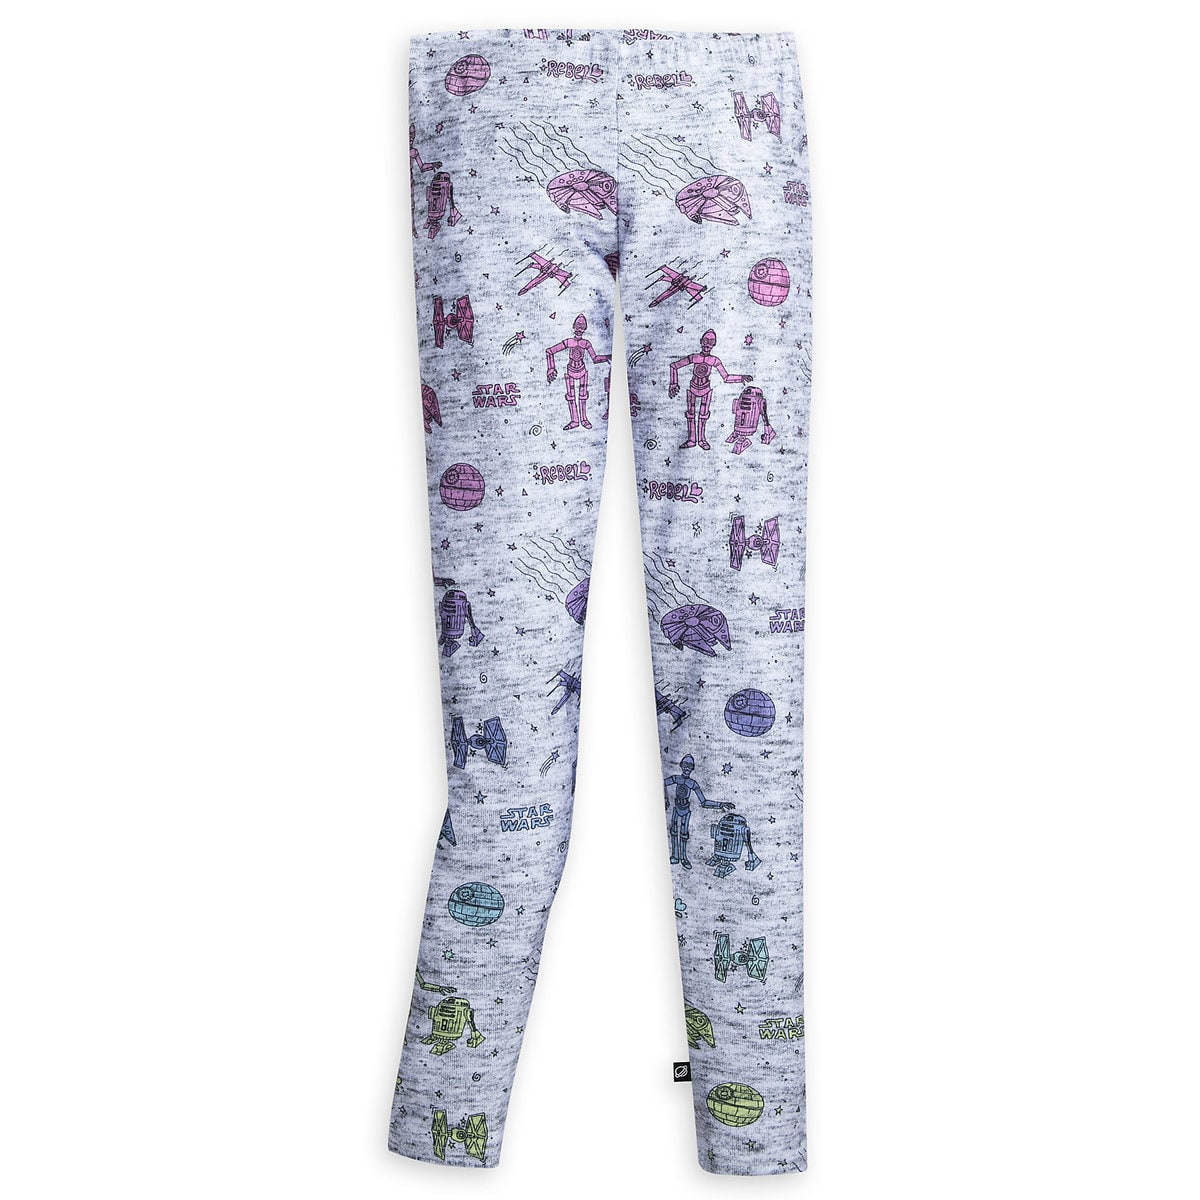 398972f0b0d10 Product Image of Star Wars Doodle Leggings for Tweens by Terez # 1